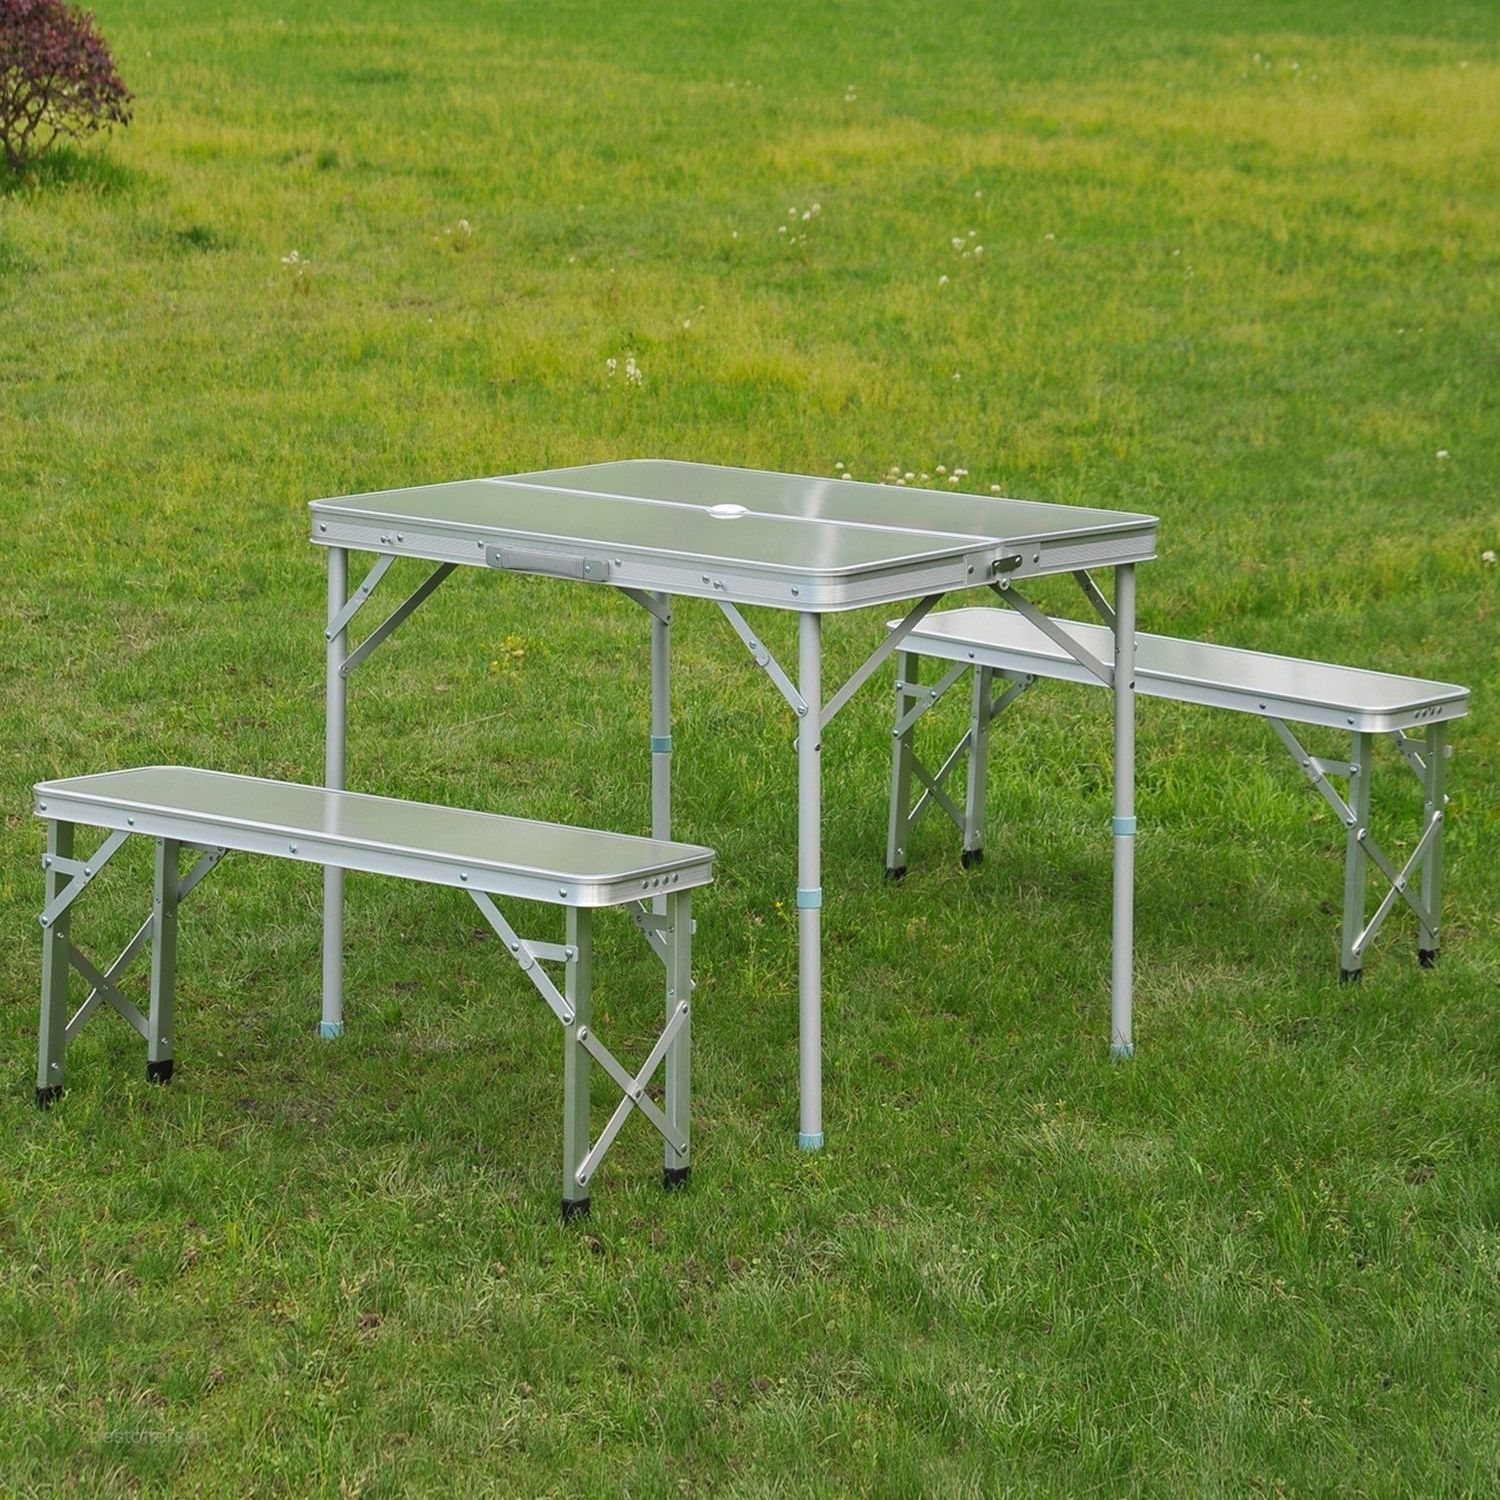 Portable Picnic Table Bench Set Outdoor Folding Garden Camping 3 pcs Alloy Set